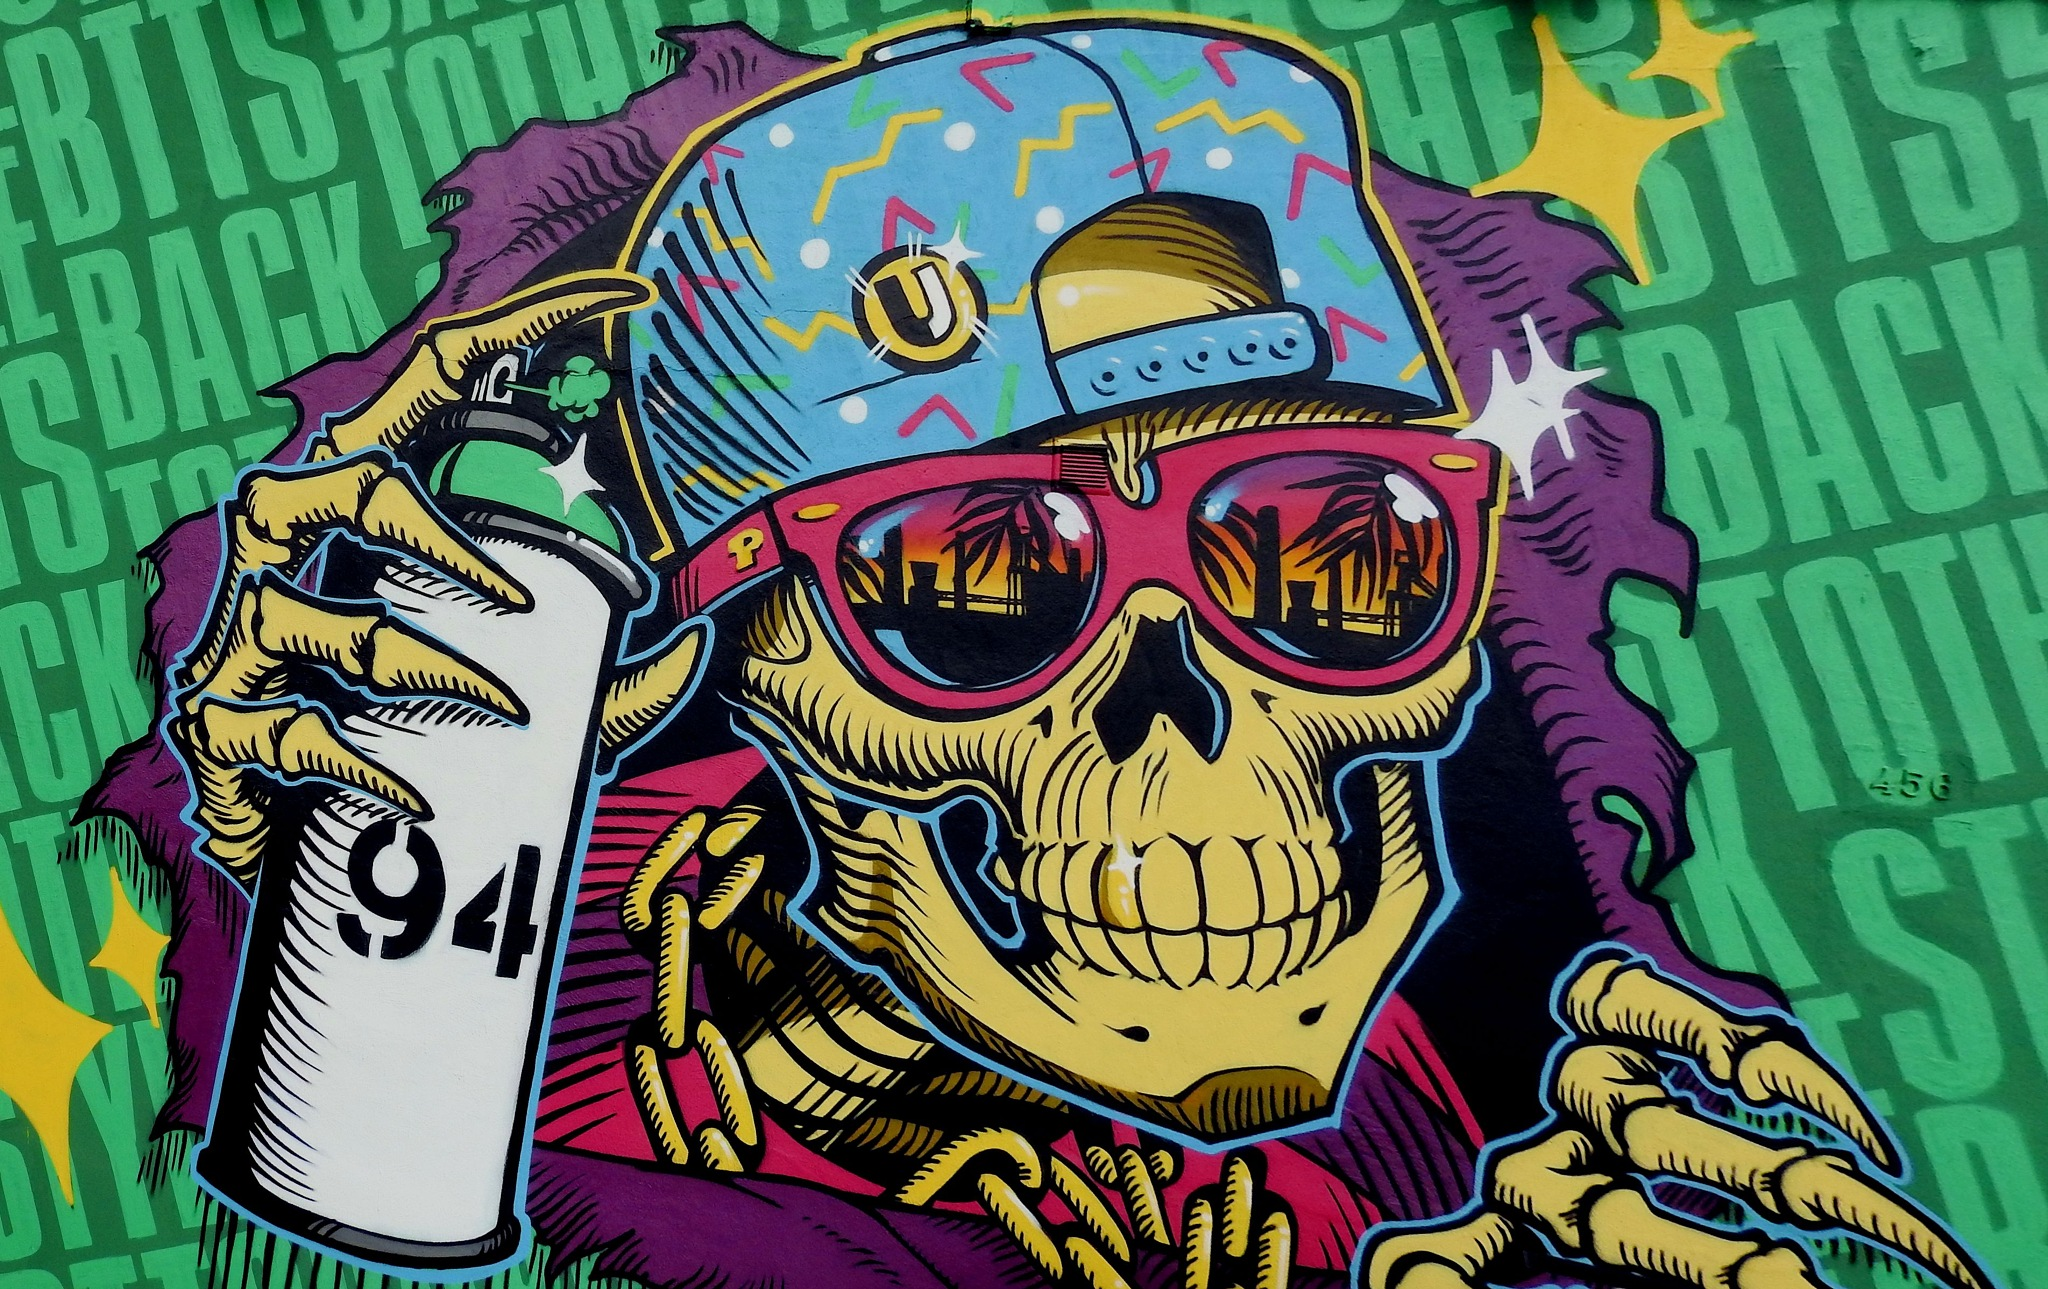 Naples Bagnoli - Street Art - Back To The Style - 22 - 23 september 2018 - COMING SOON!!!  by Delirium Tremends 62